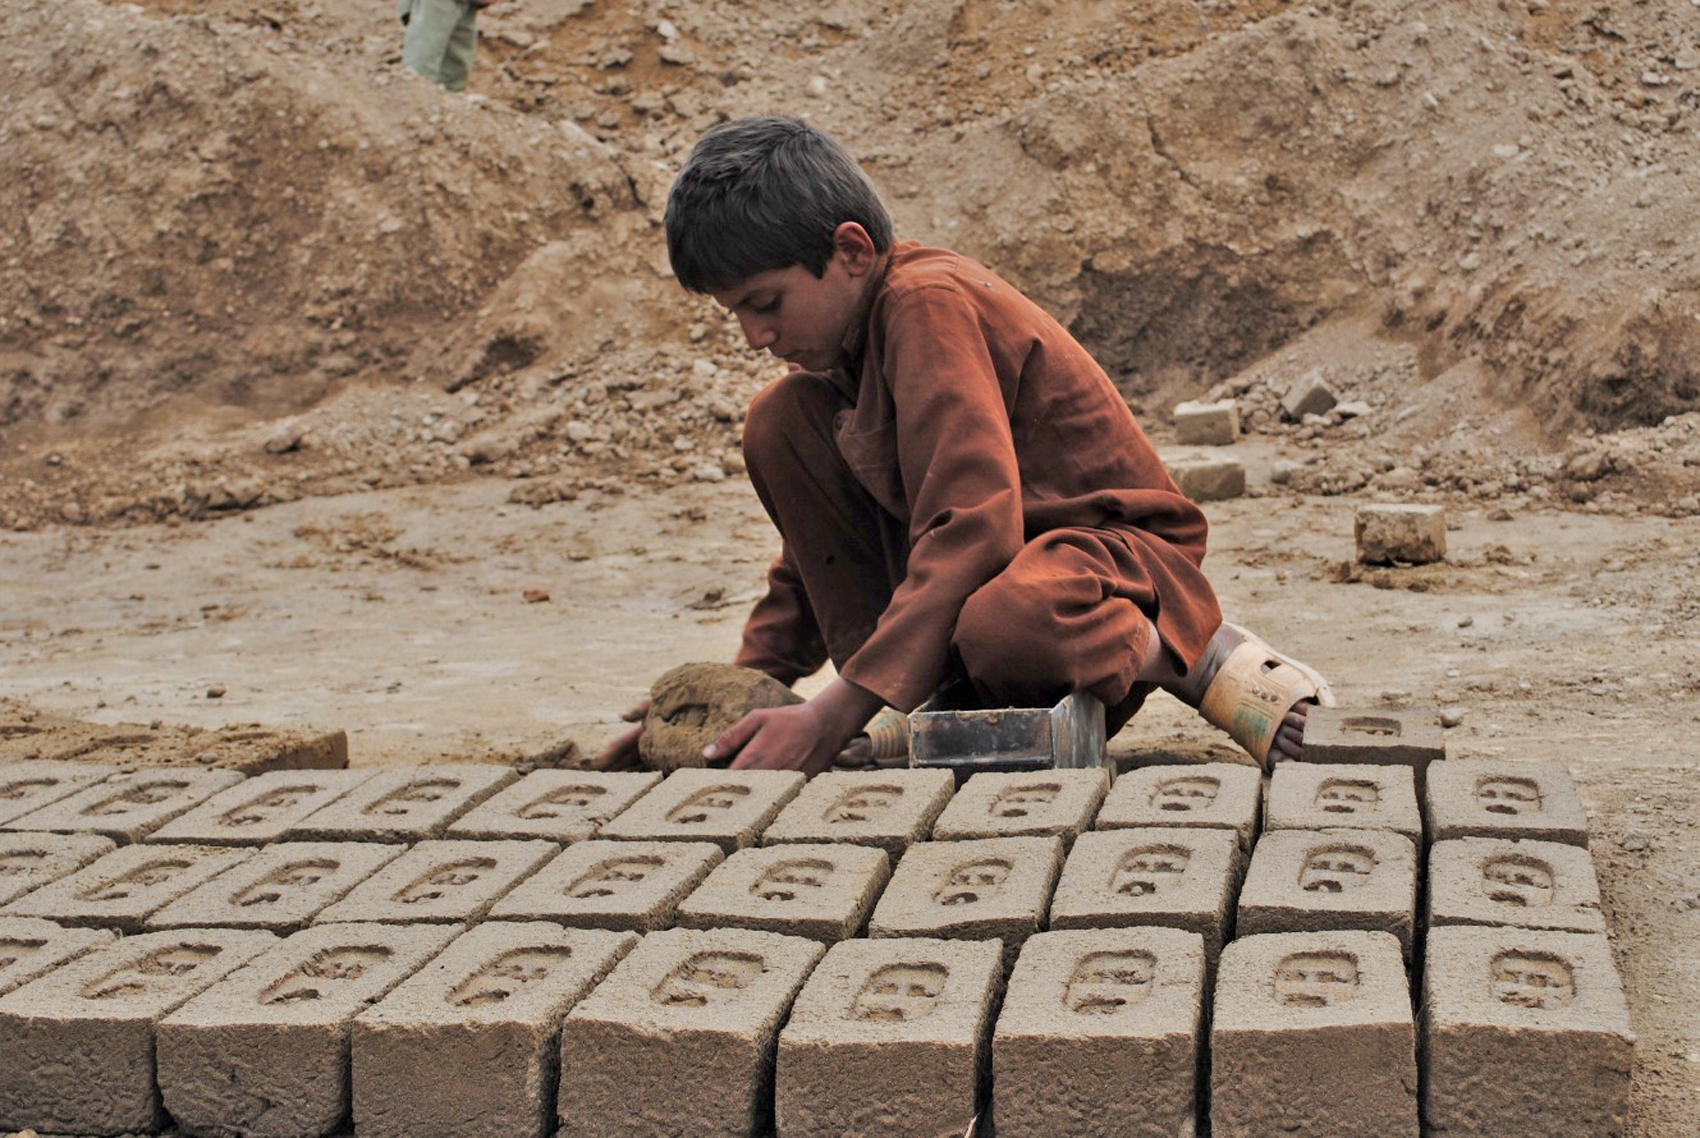 A boy makes bricks at a kiln in Afghanistan